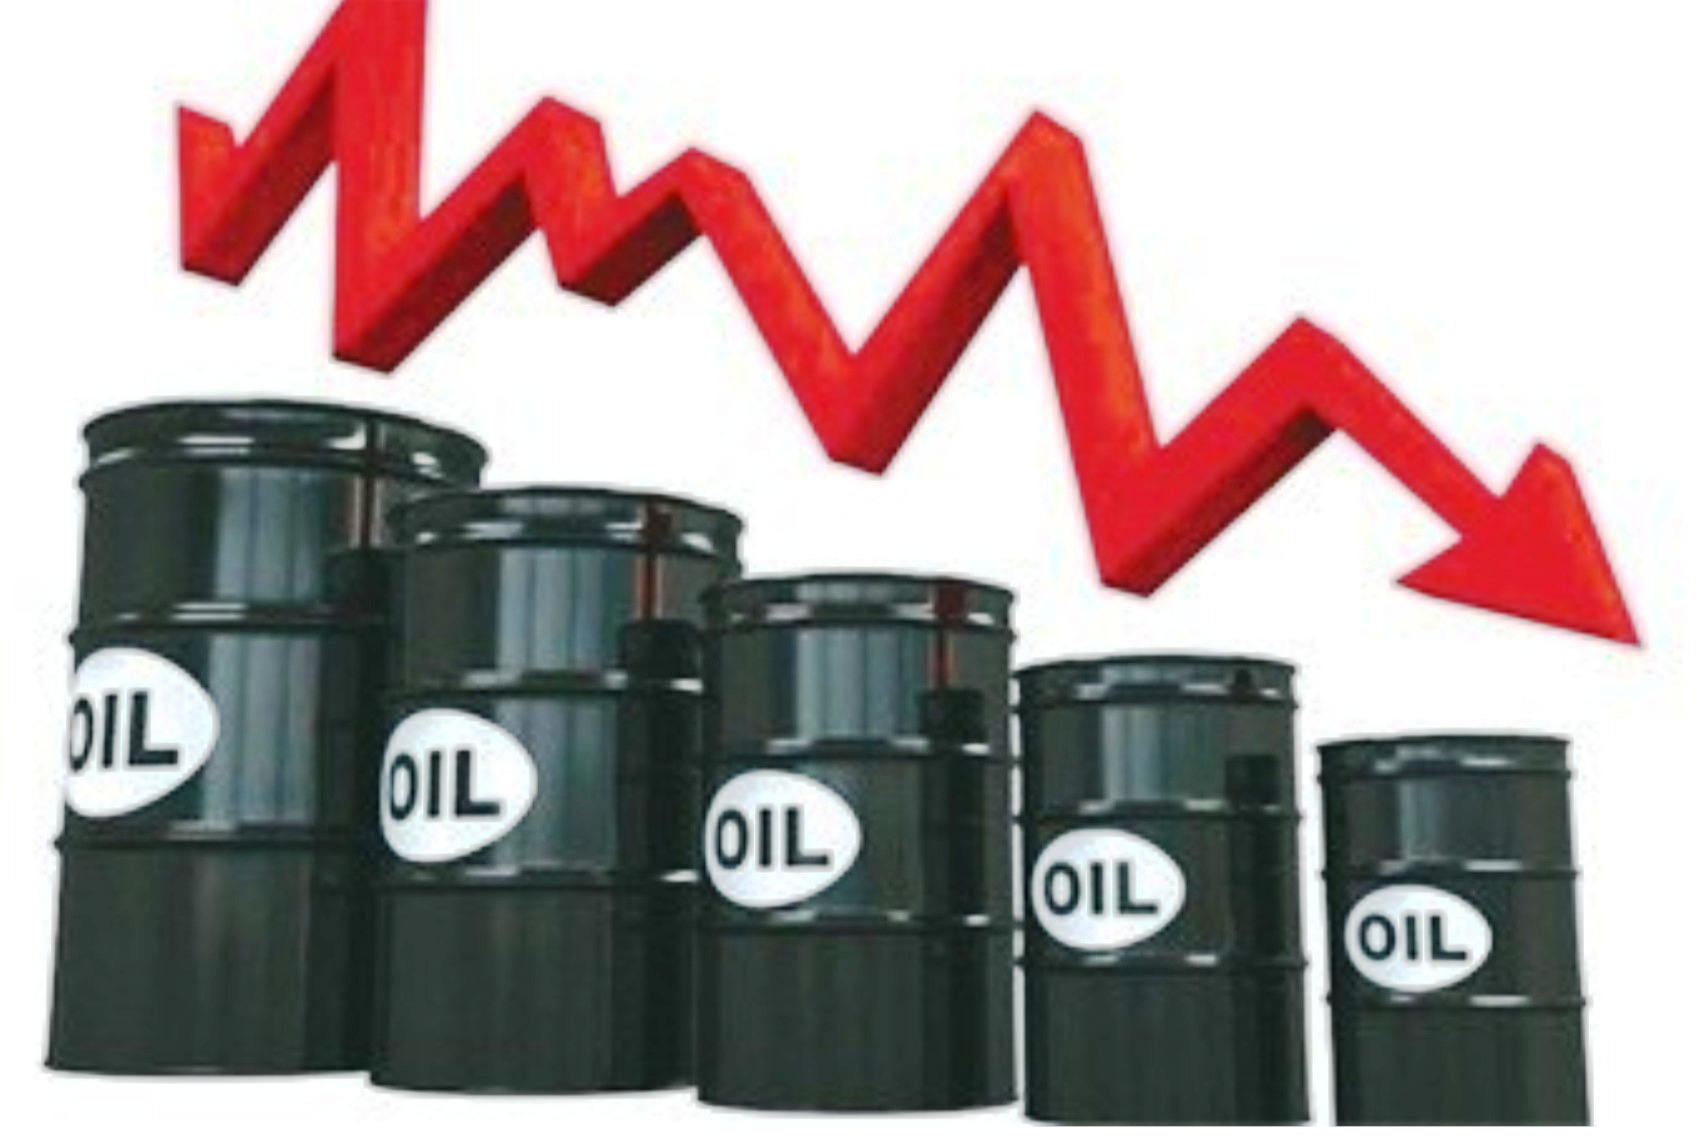 Oil prices decline ahead of OPEC meeting